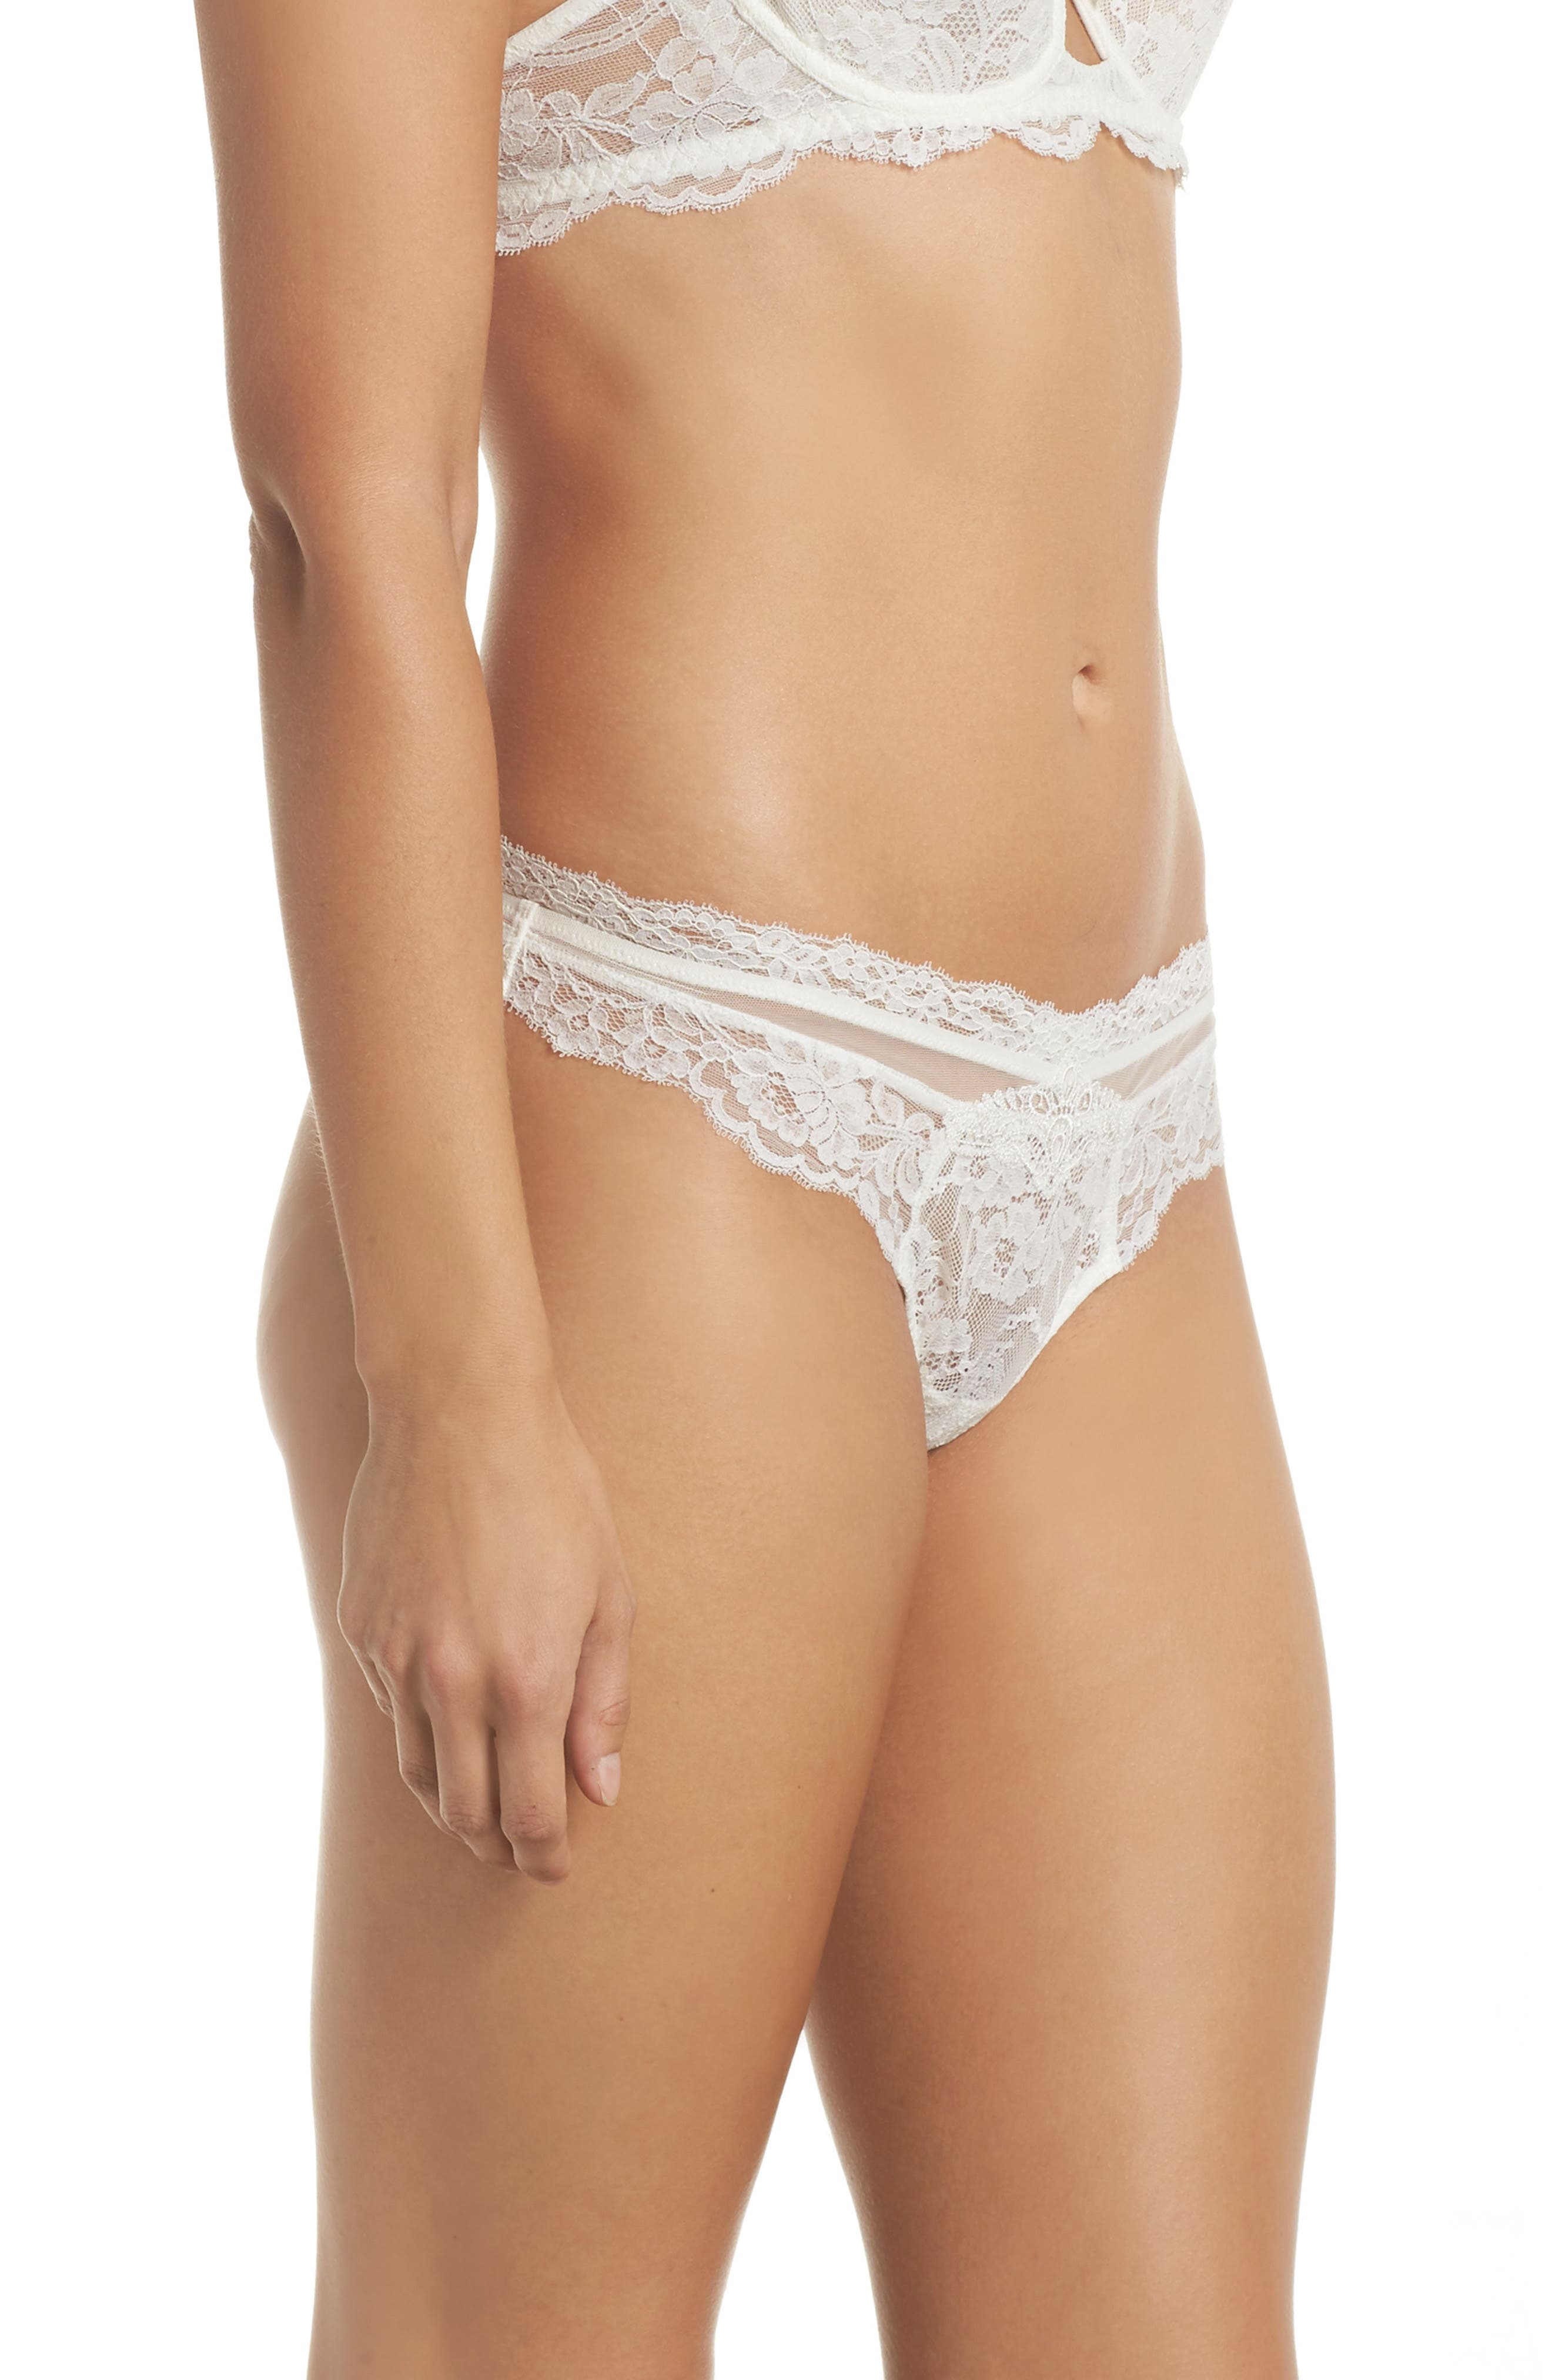 Exception Charme Thong,                             Alternate thumbnail 3, color,                             NACRE